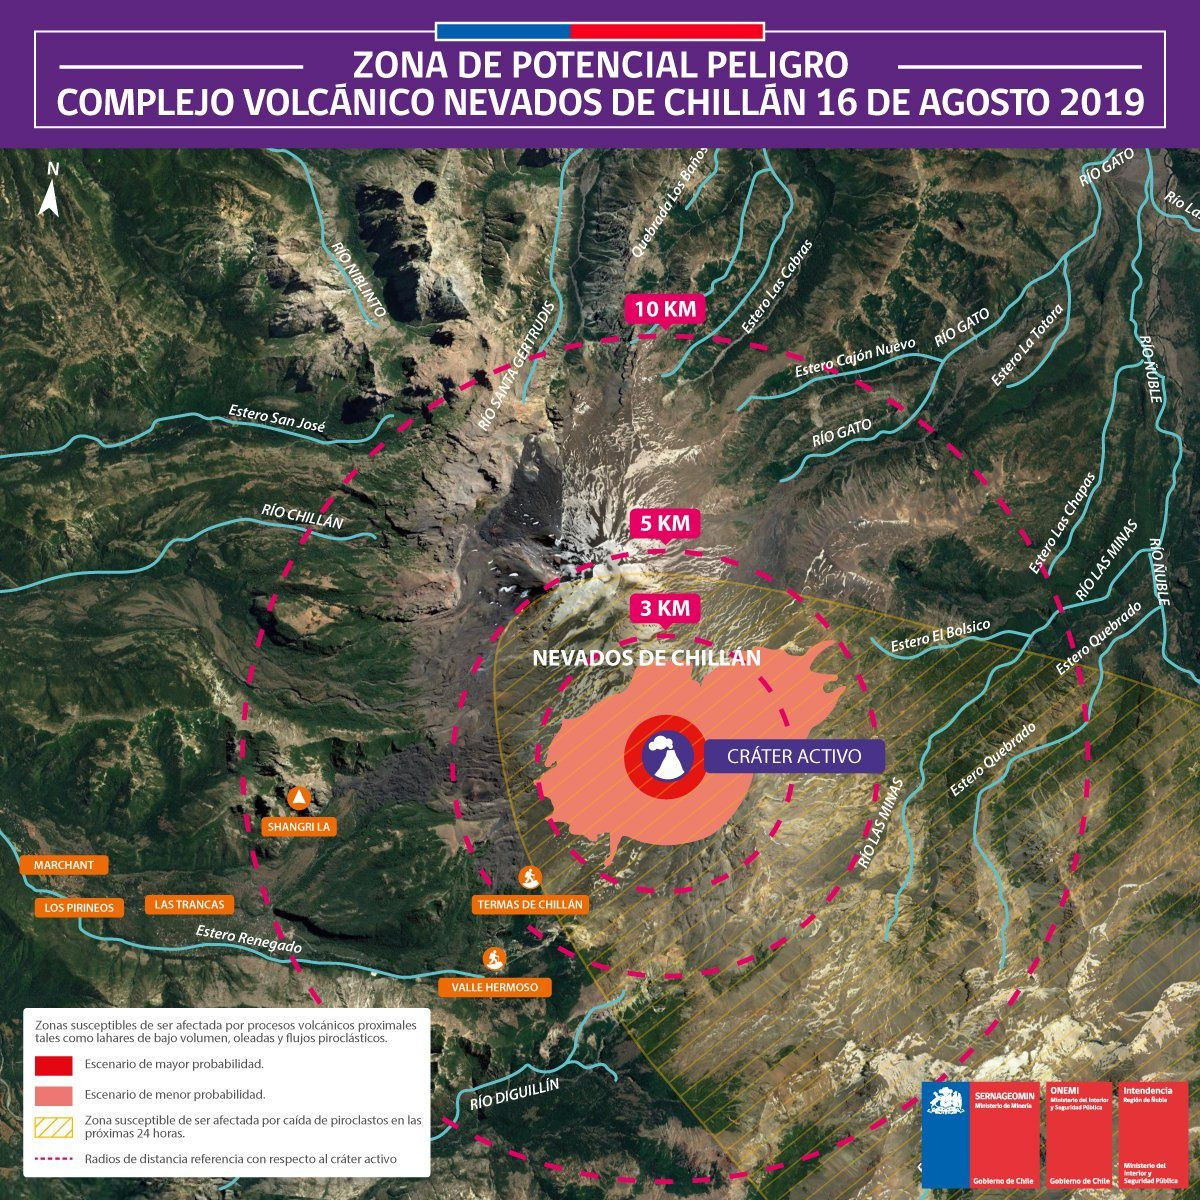 Nevados de Chillan - carte des risques potentiels , revue su 16.08.2019 - Doc. Onemi Chile